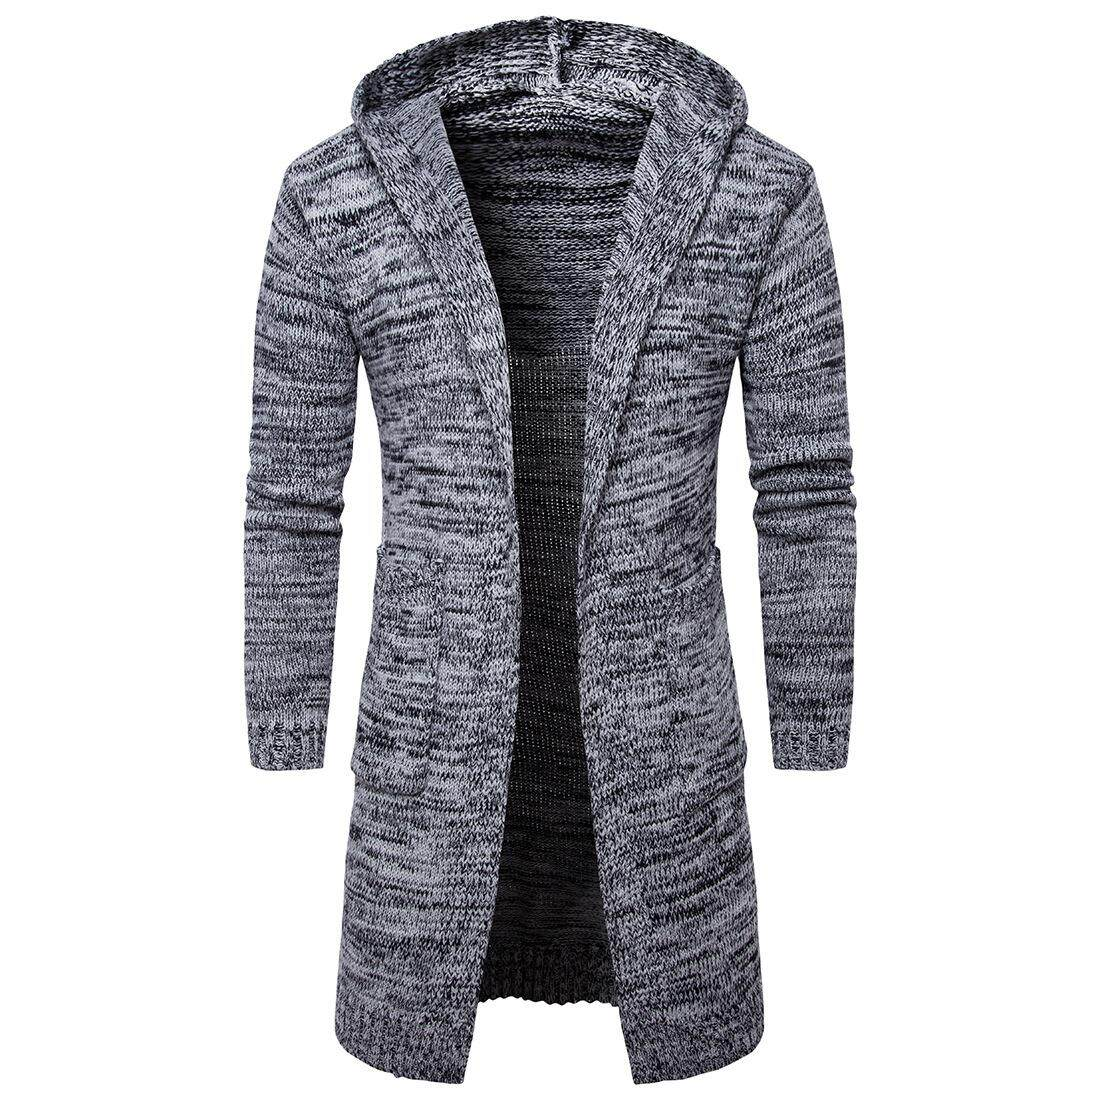 Wjkfgi Mens Slim Fit Hooded Knit Sweater Fashion Cardigan Long Trench Coat Jacket By Wjkfgi Store.